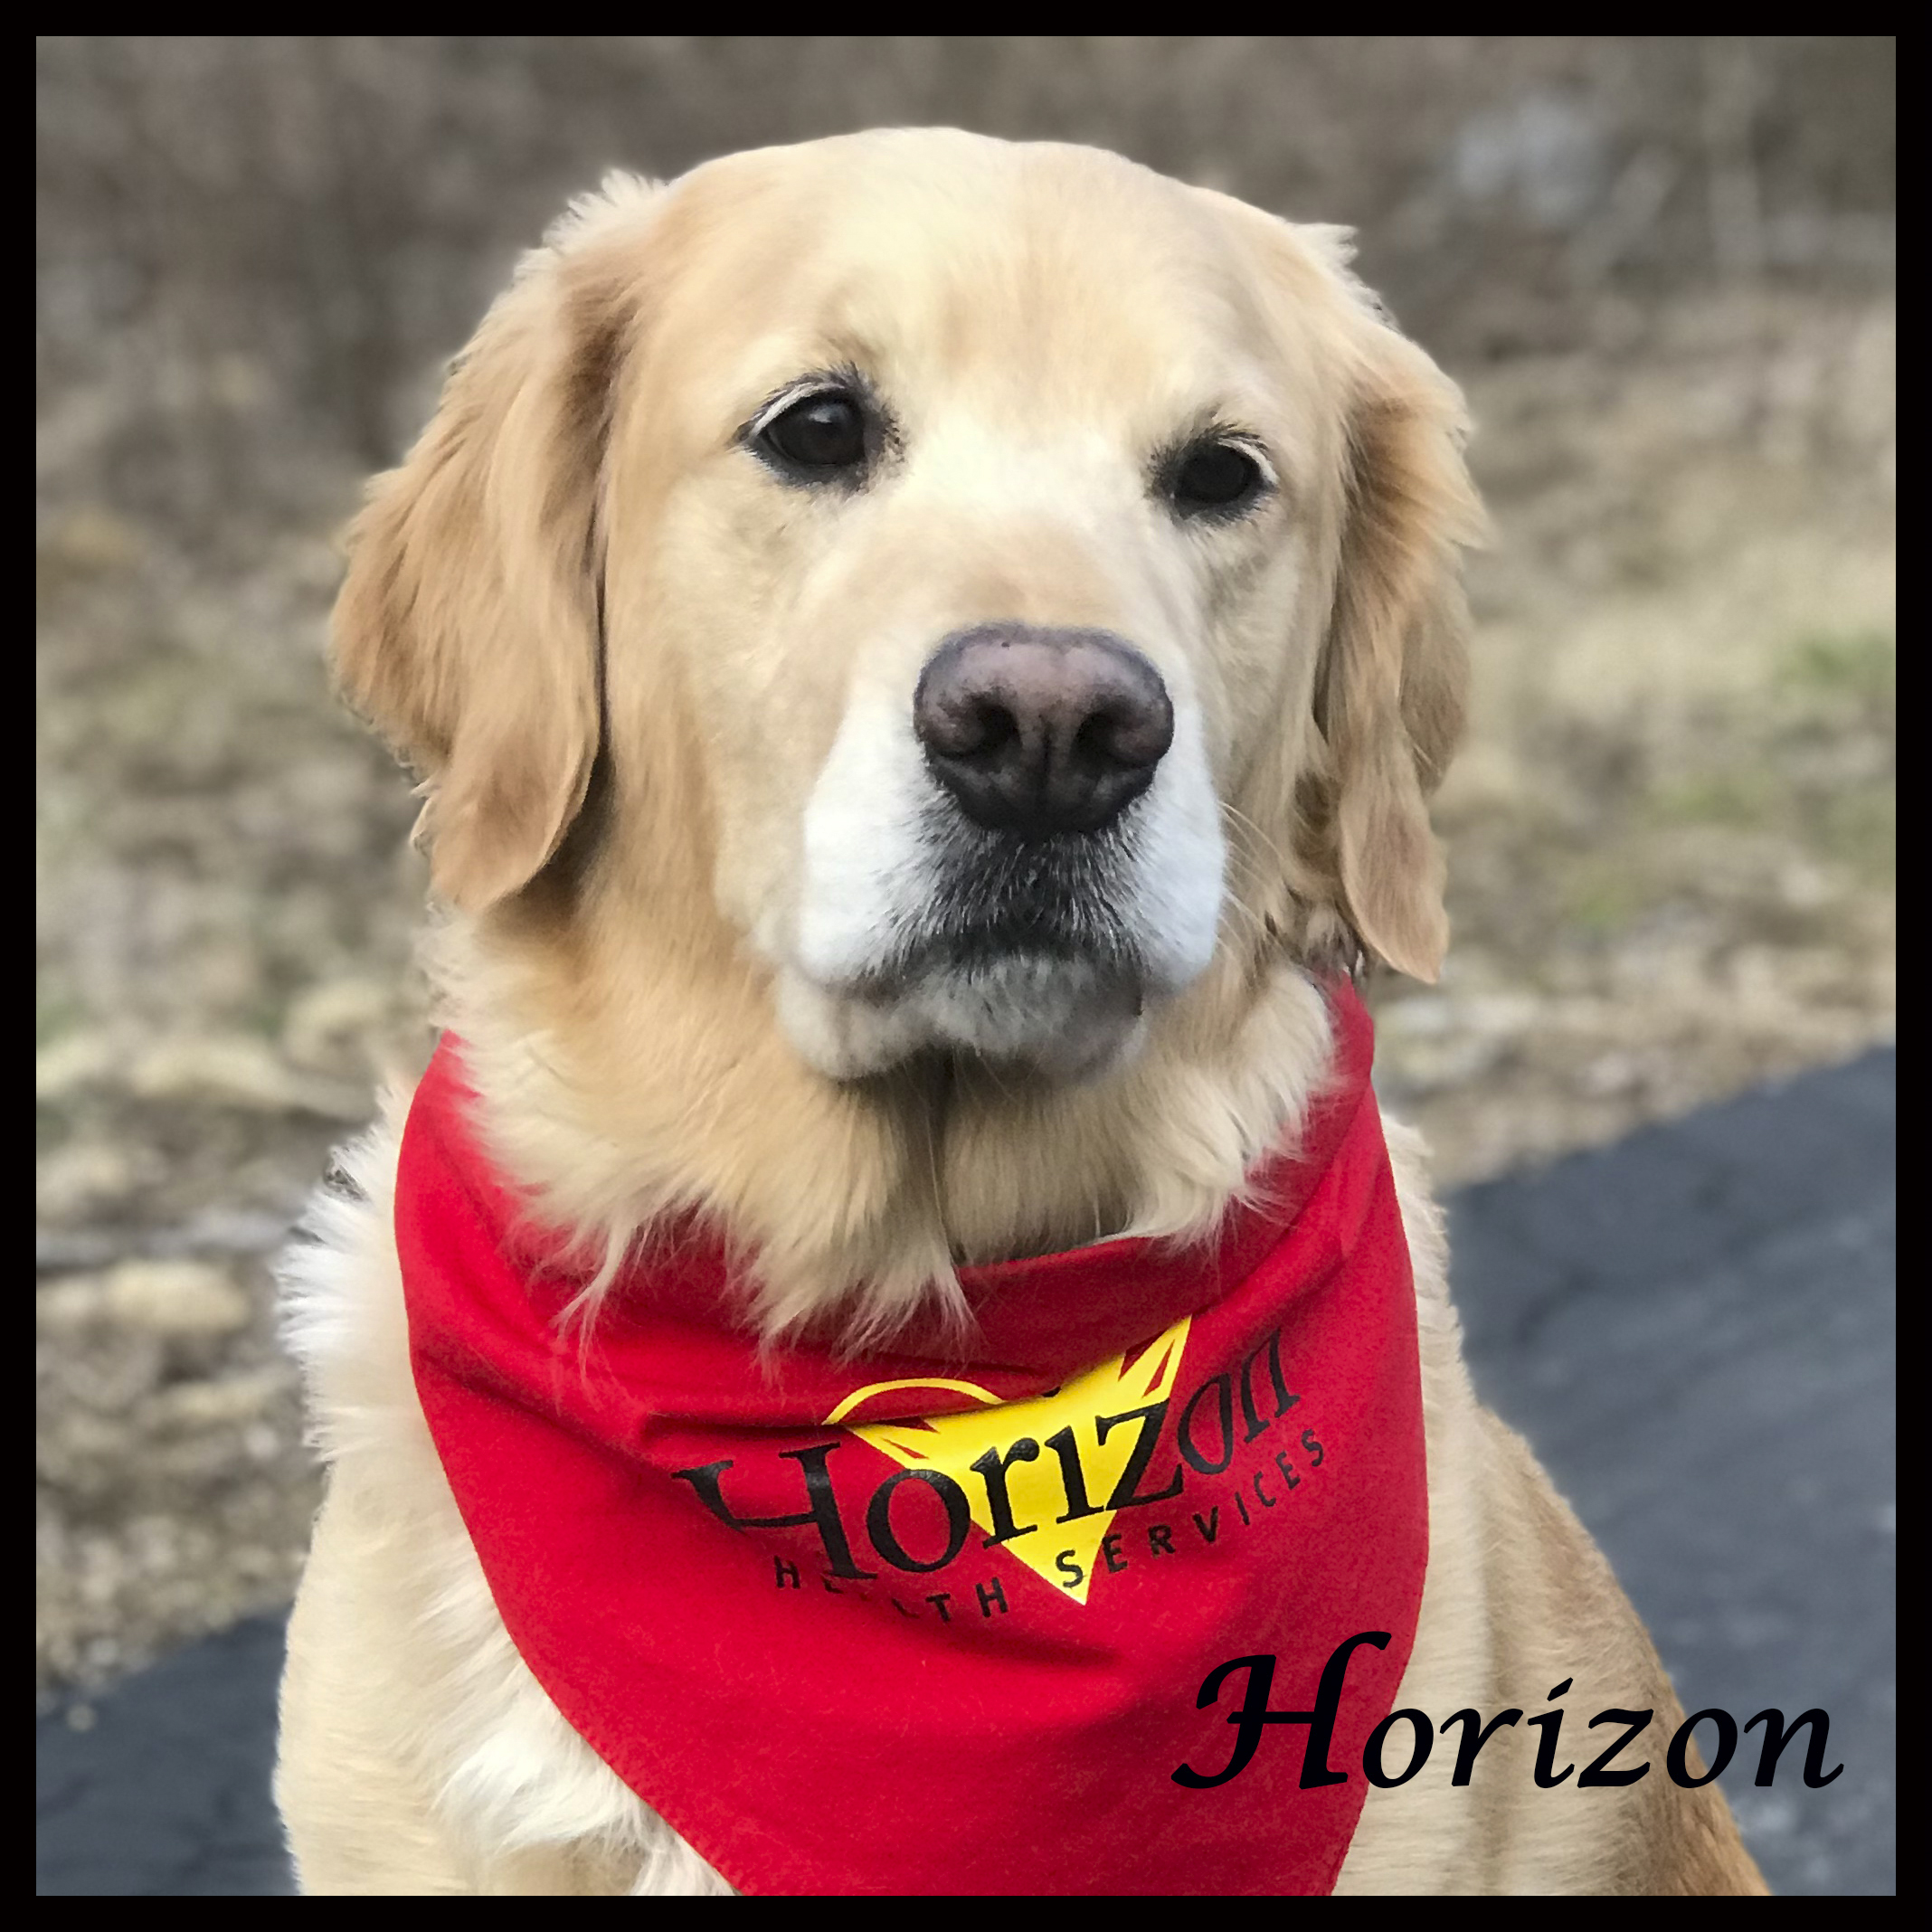 Horizon therapy Dog